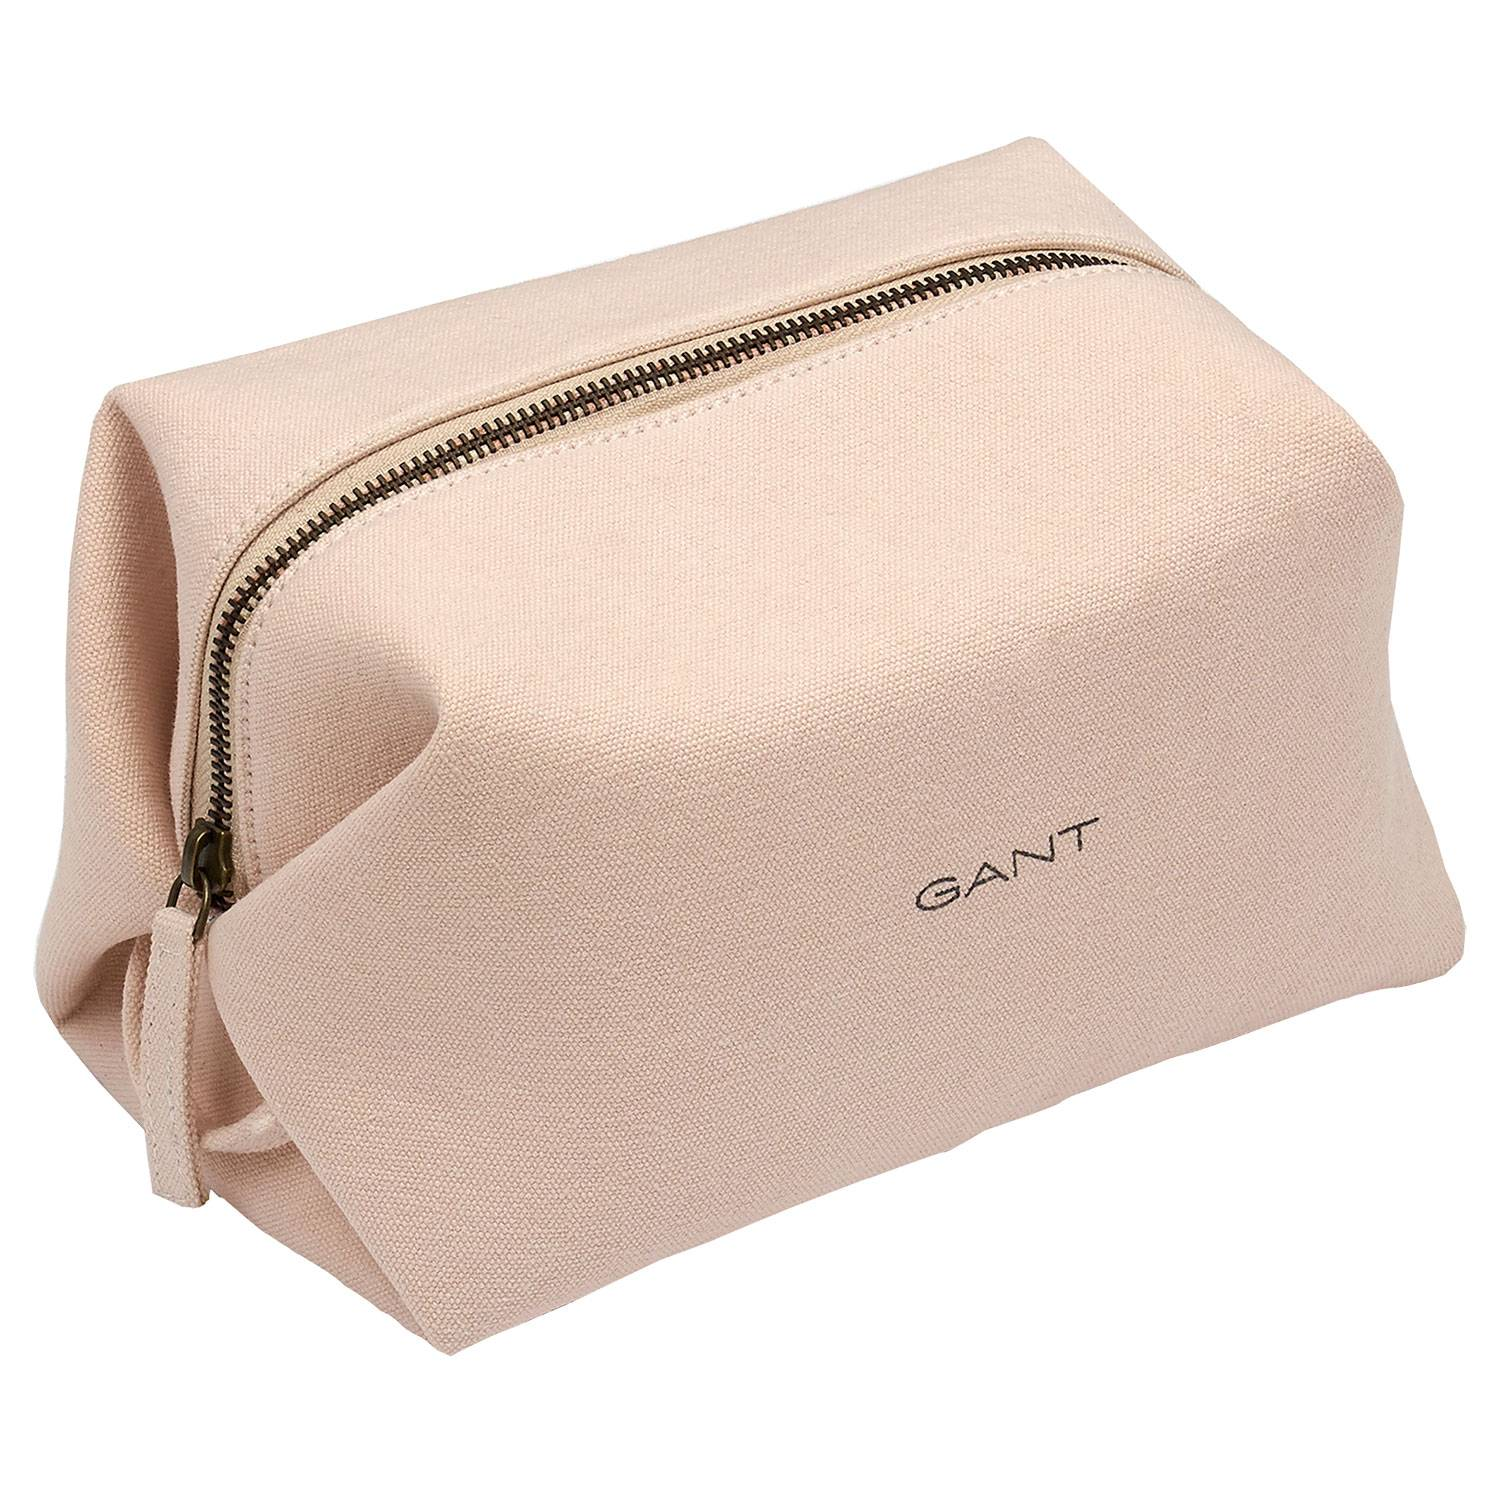 Gant Home Canvas Kylpylaukku Suuri, Nantucket Pink